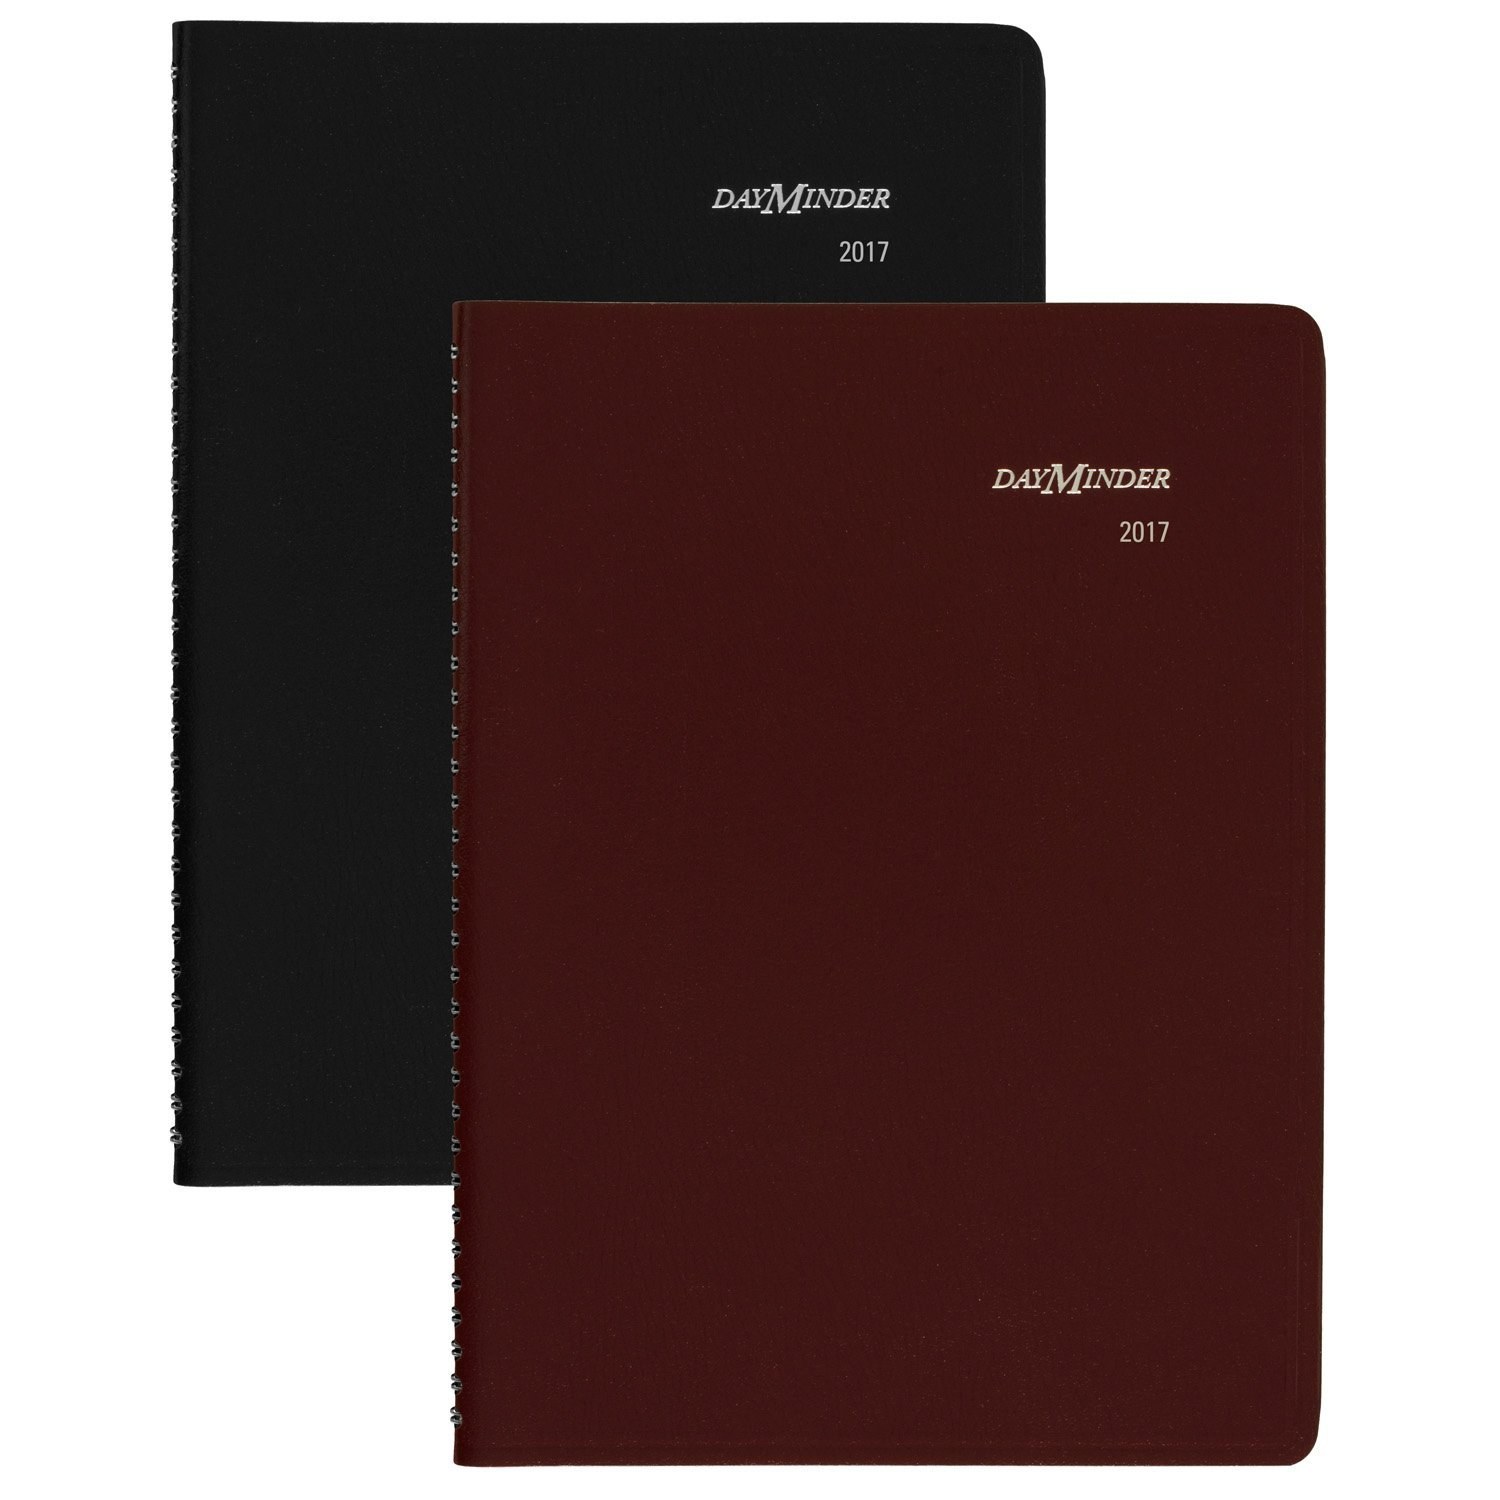 DayMinder Weekly Appointment Book/Planner 2017, 8 x 11, Color Selected For You May Vary (G520-10) 8 x 11 ACCO Brands G52010